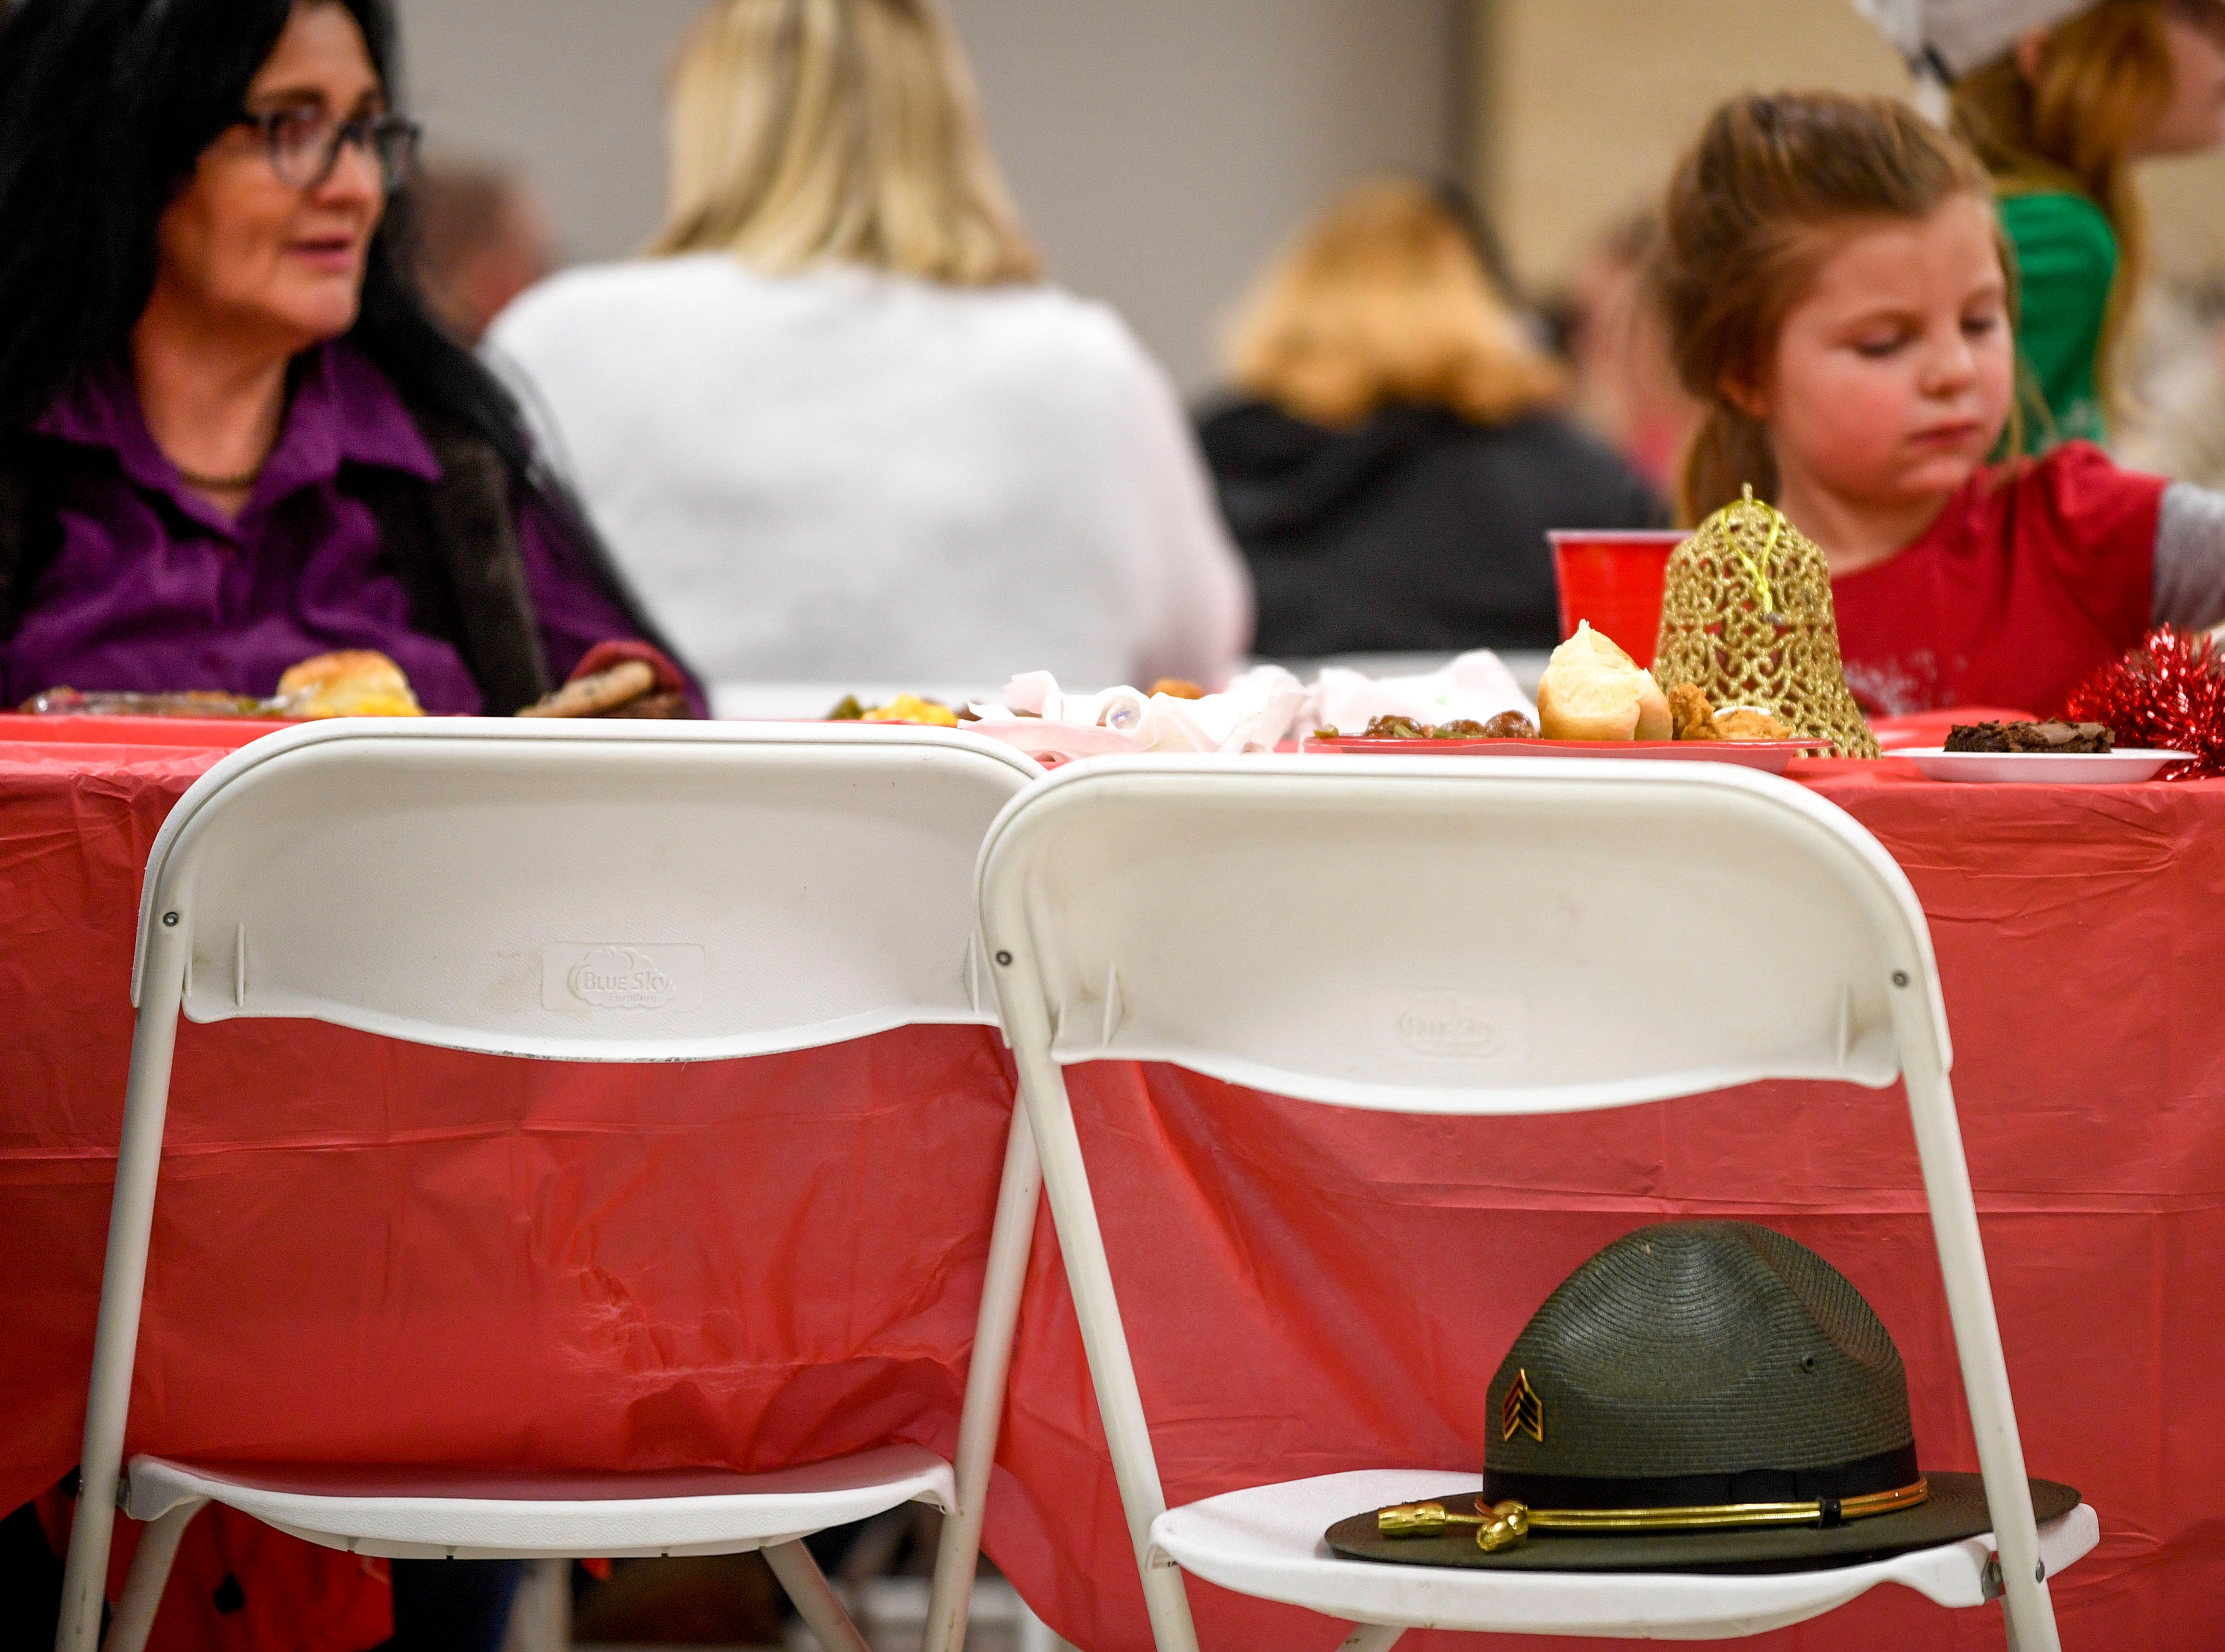 A state trooper leaves their hat to mark their seat near their kids during the matching time for Shop with a Cop at Hawkins-Whitby Fema Community Safe Room in Milan, Tenn., on Thursday, Dec. 13, 2018.